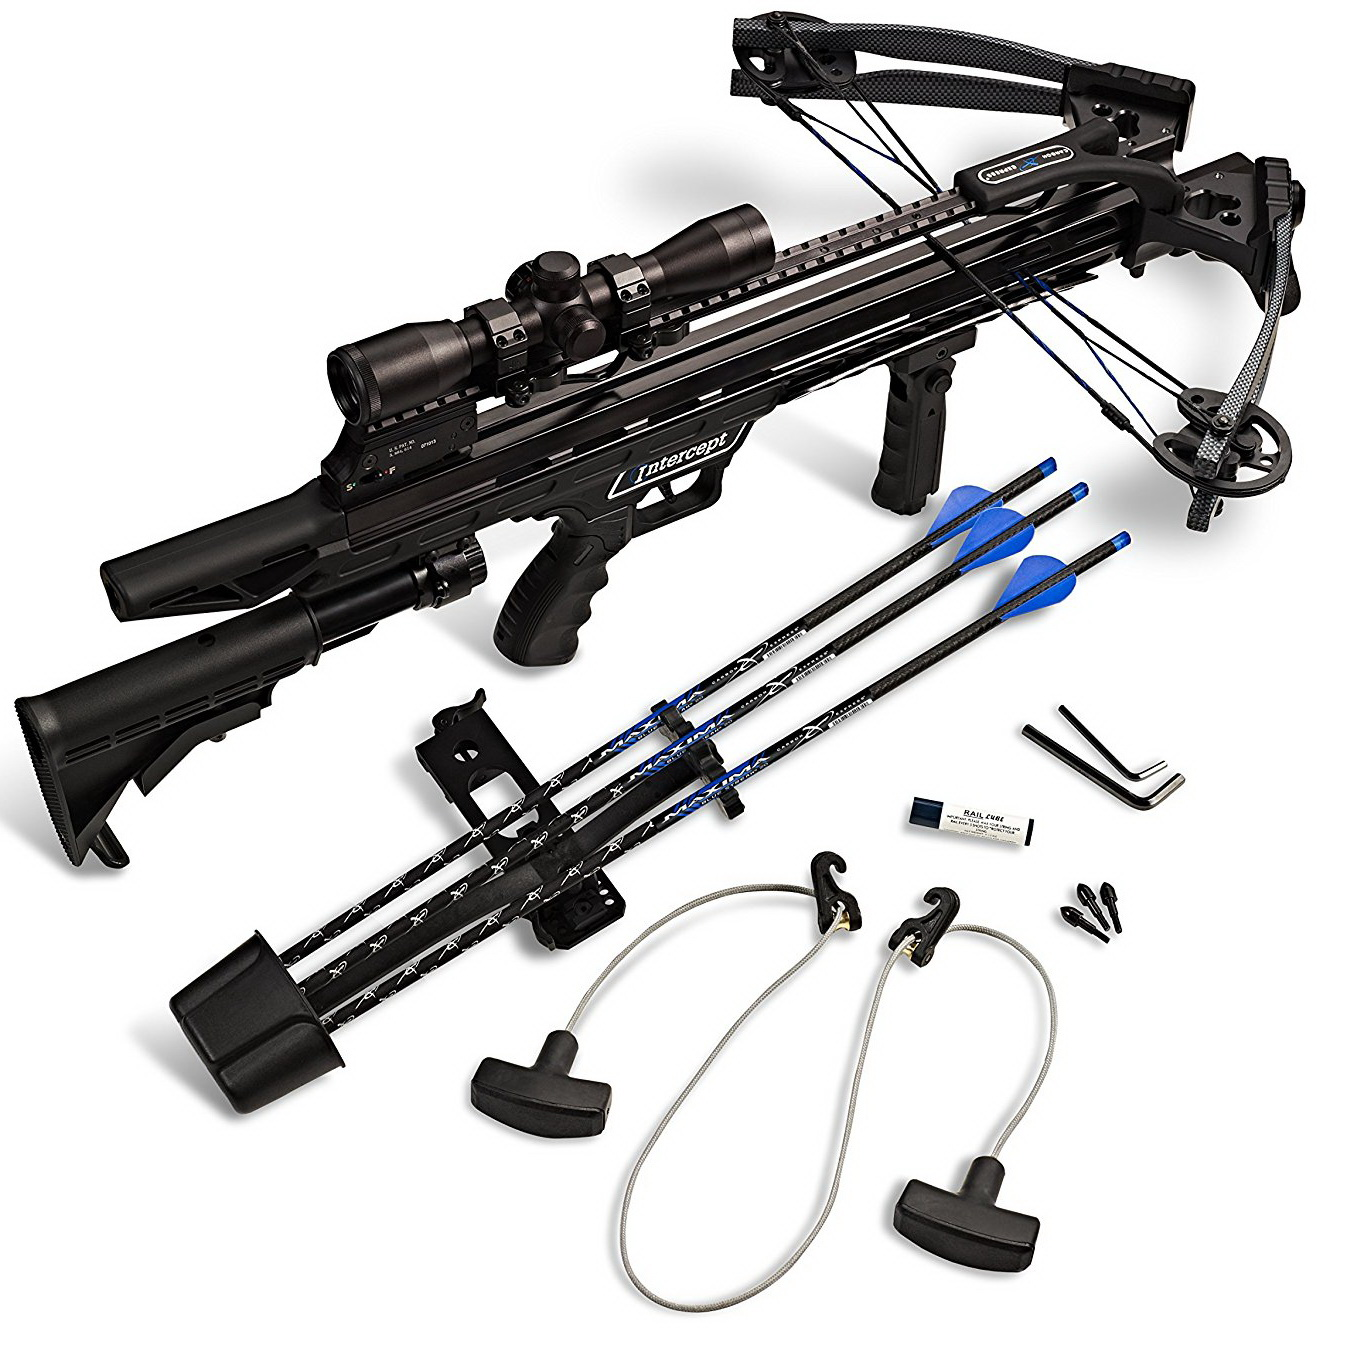 Carbon Express Intercept Axon Ready-to-Hunt Crossbow Kit